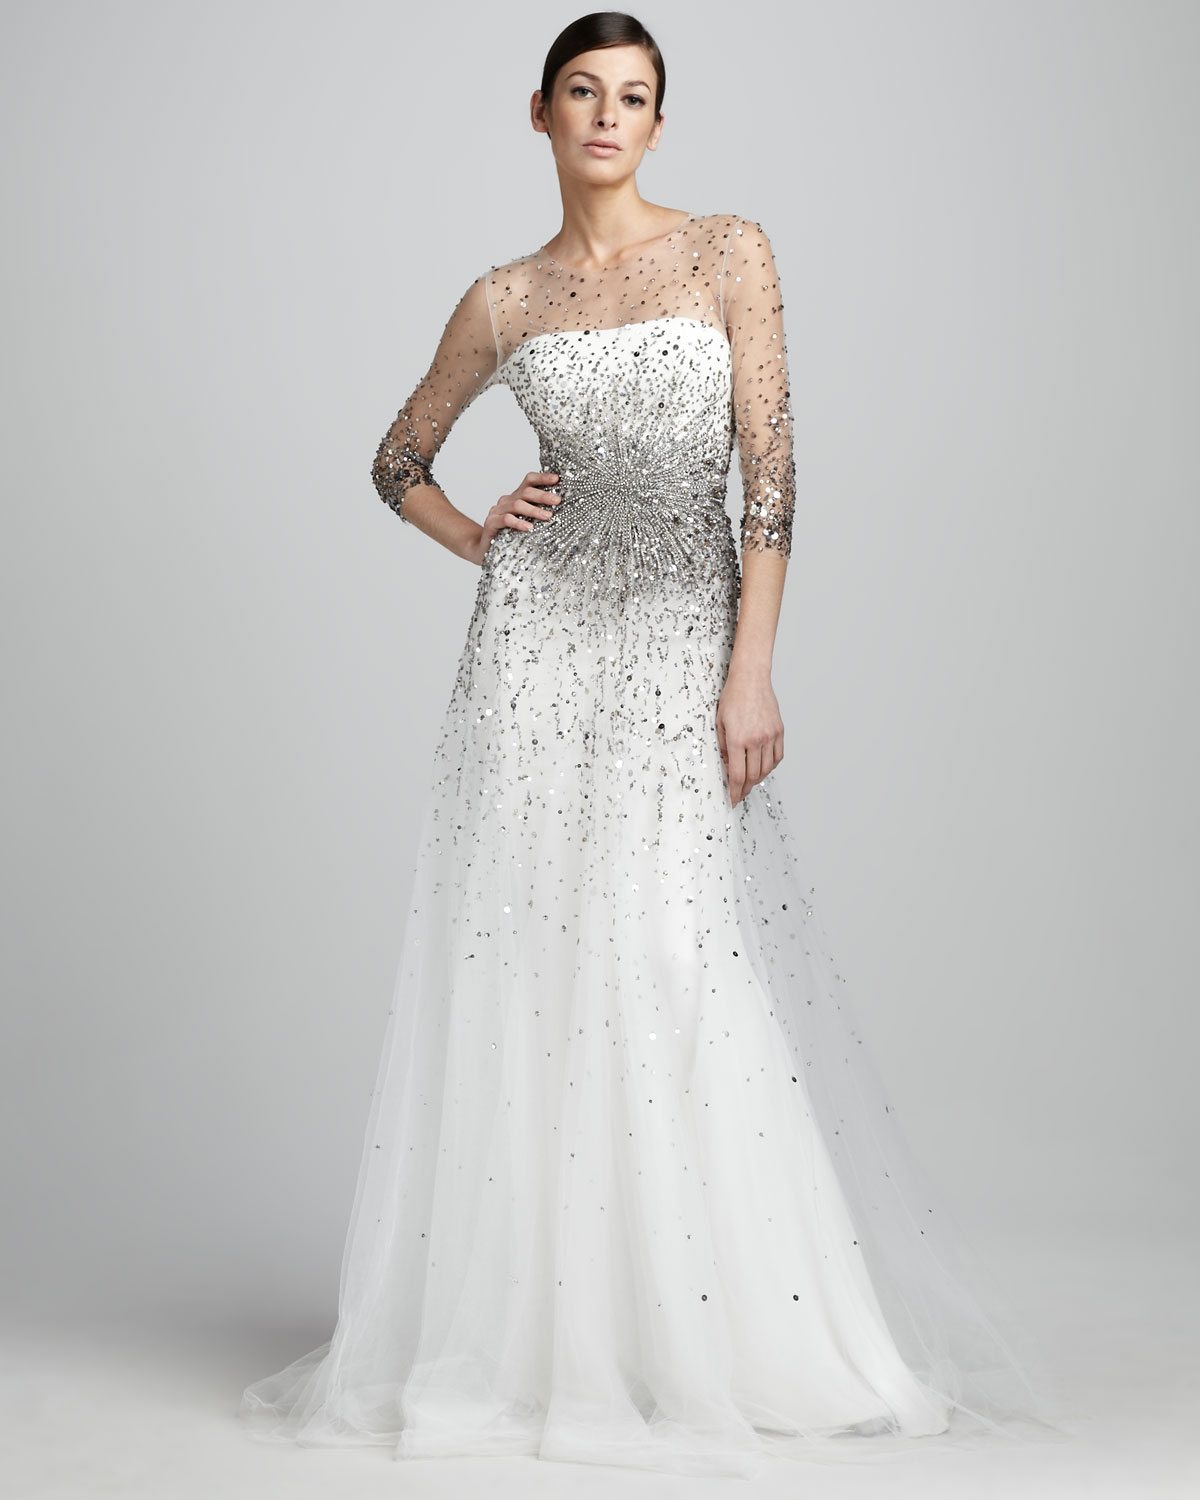 Wedding Dresses For Second Time Brides Over 40 | Wedding